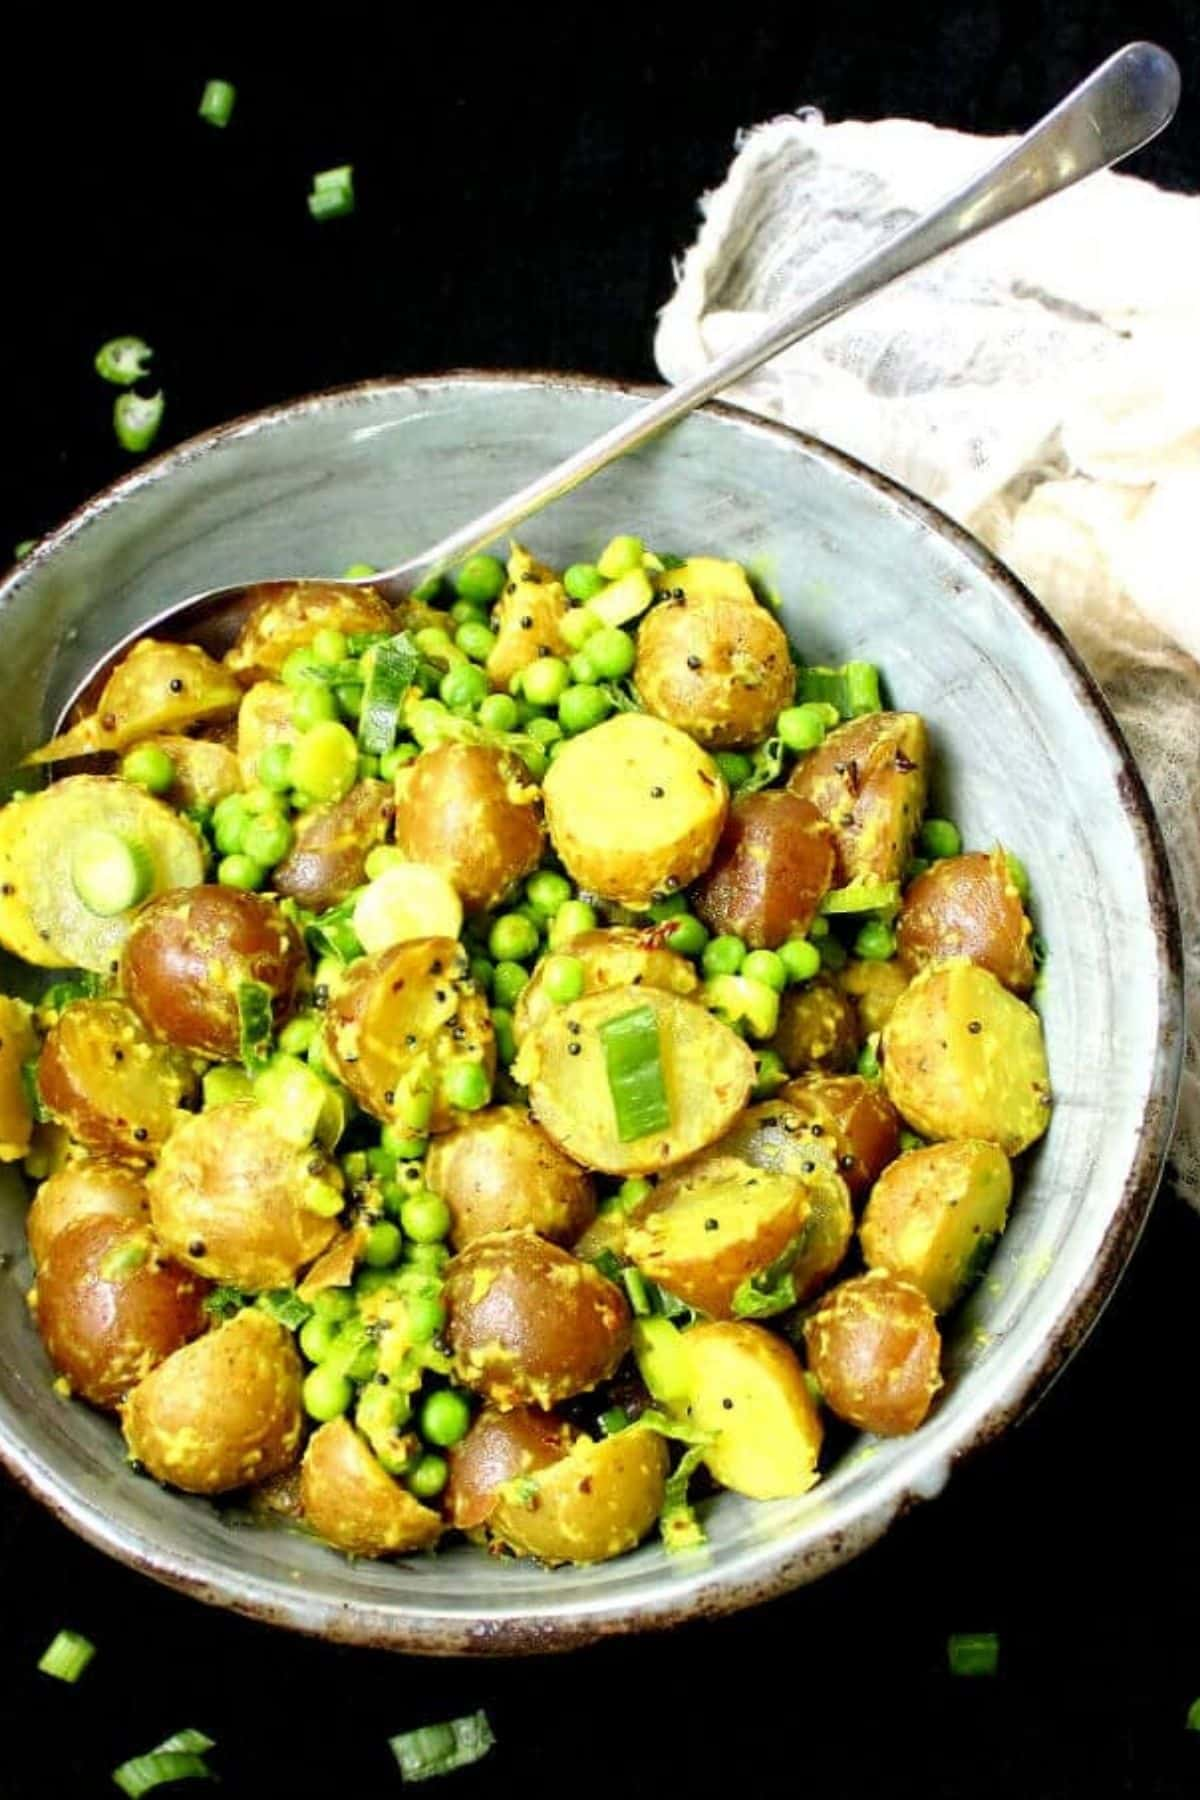 Photo of vegan potato salad made with Indian flavorings like coconut, ginger and turmeric in a glazed green and brown bowl.